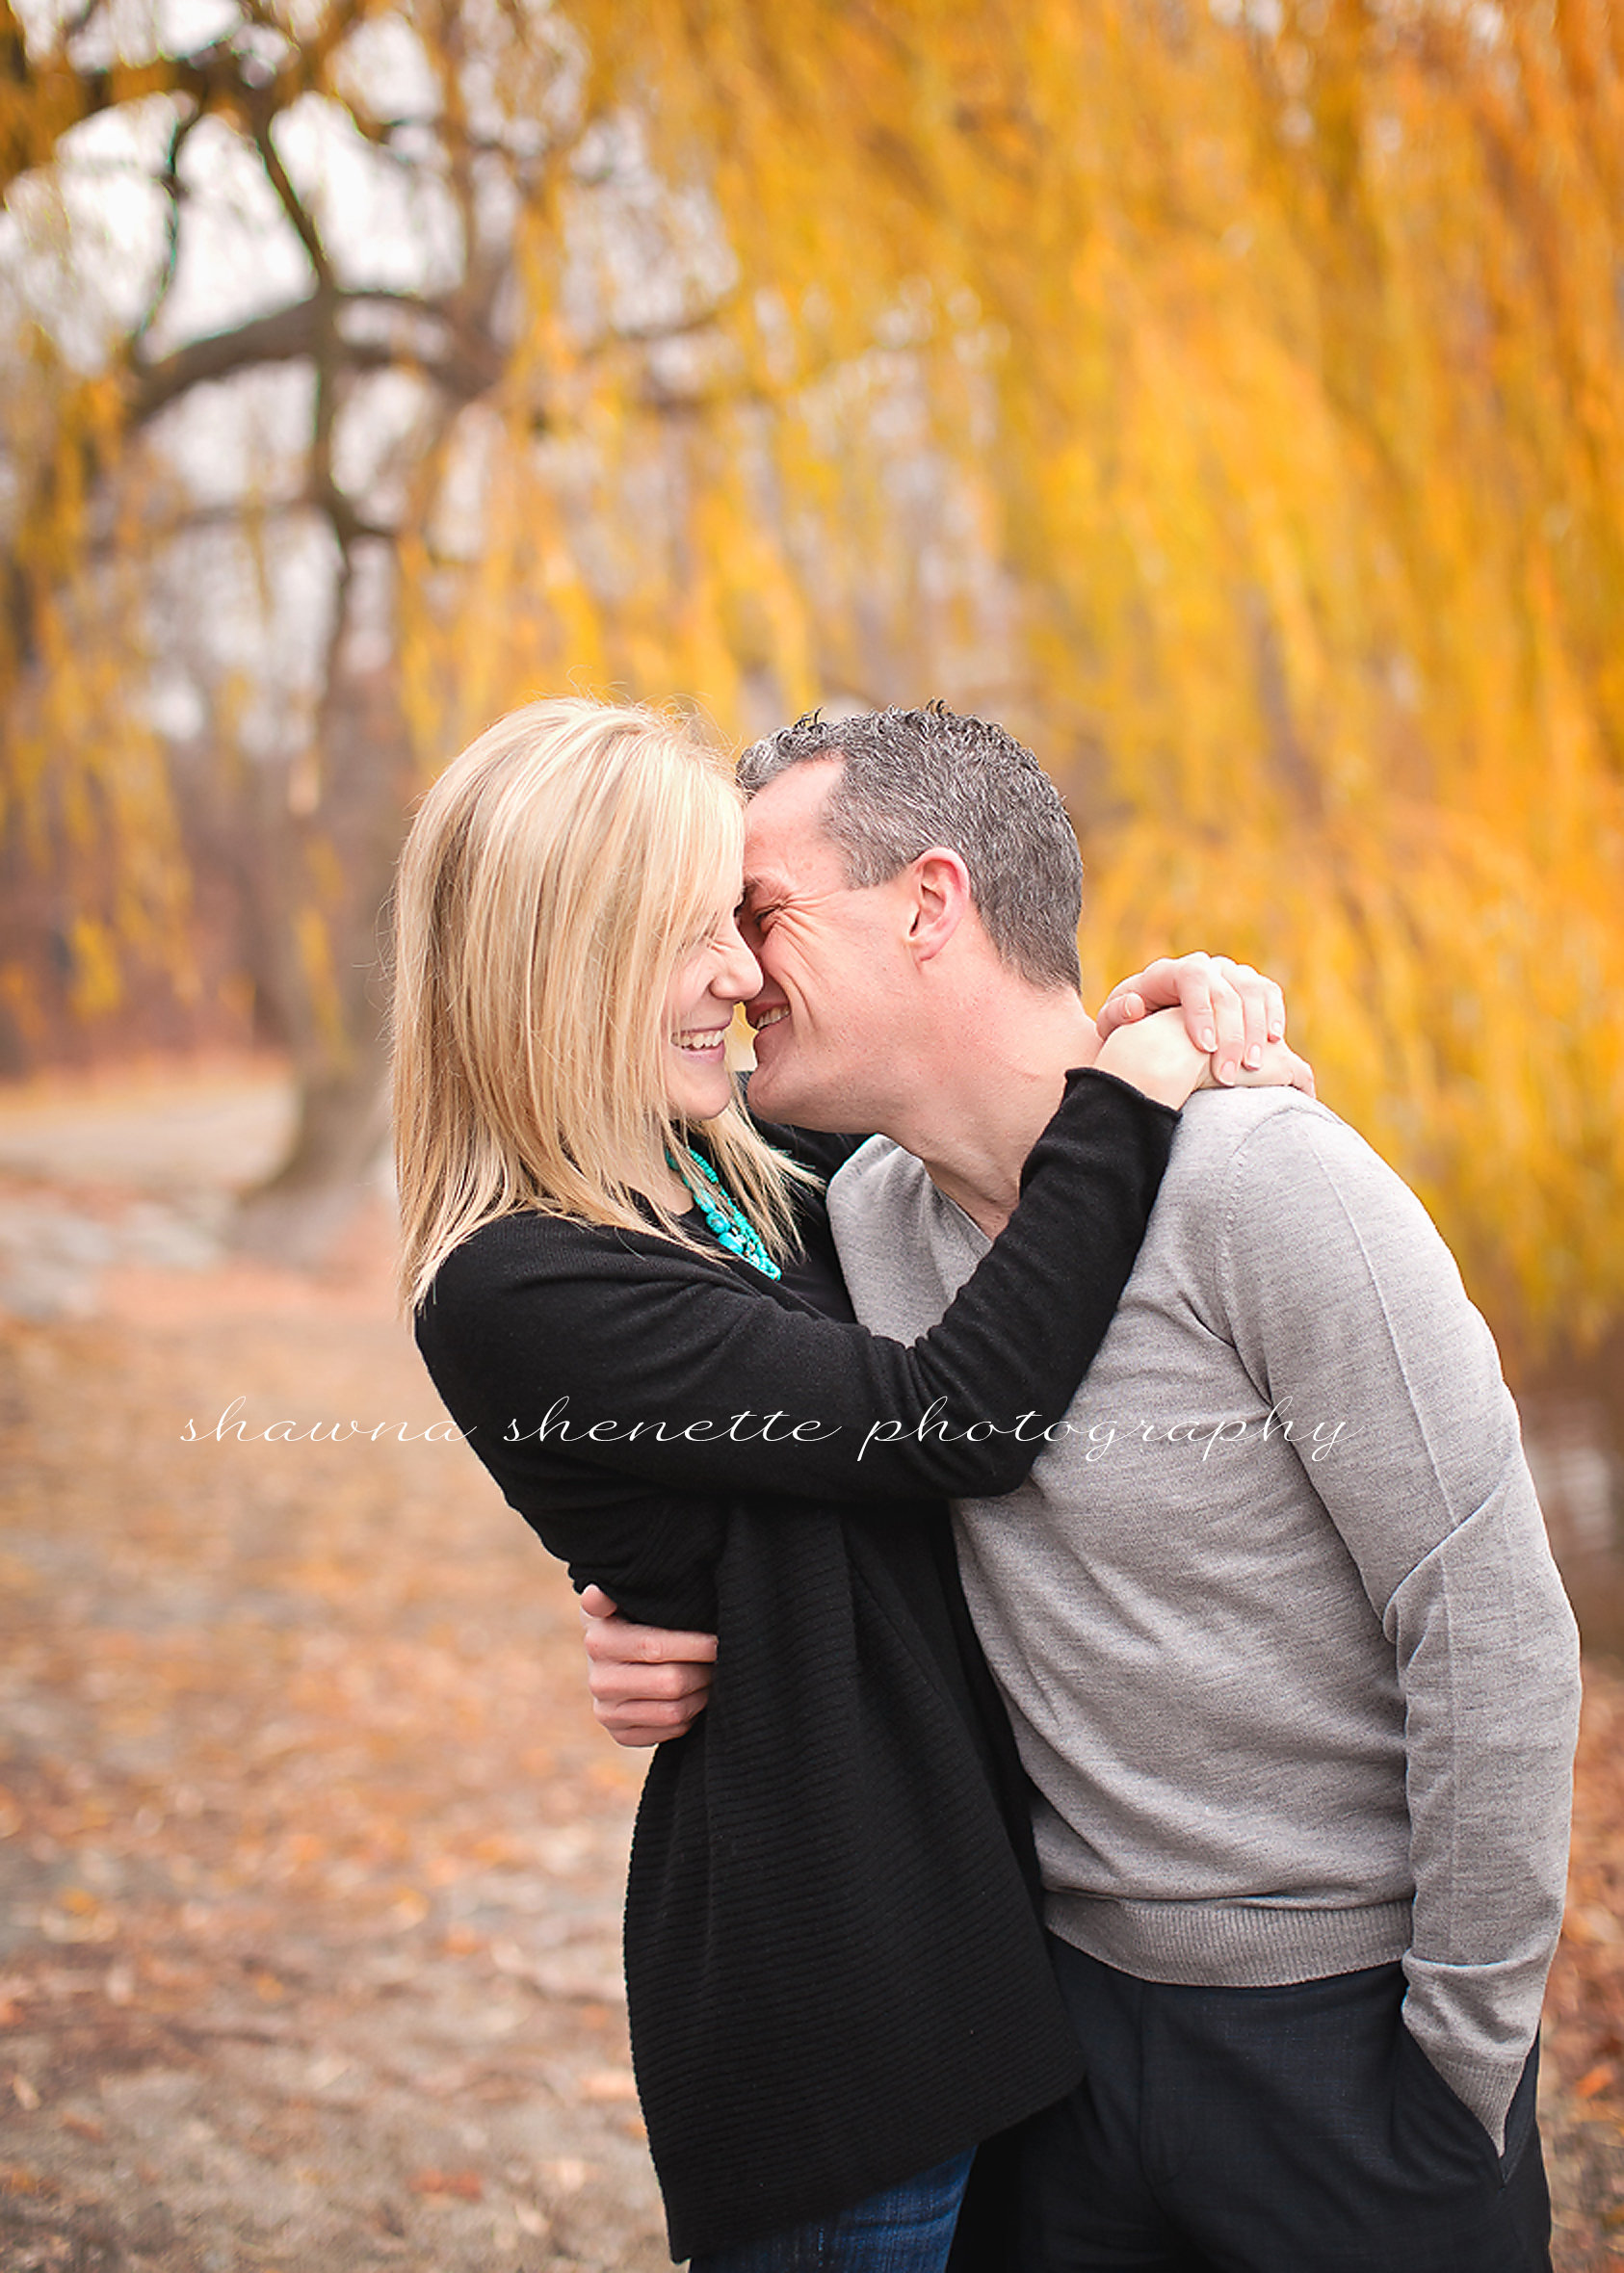 worcester ma engagement photography millbury best photographer massachusetts photos